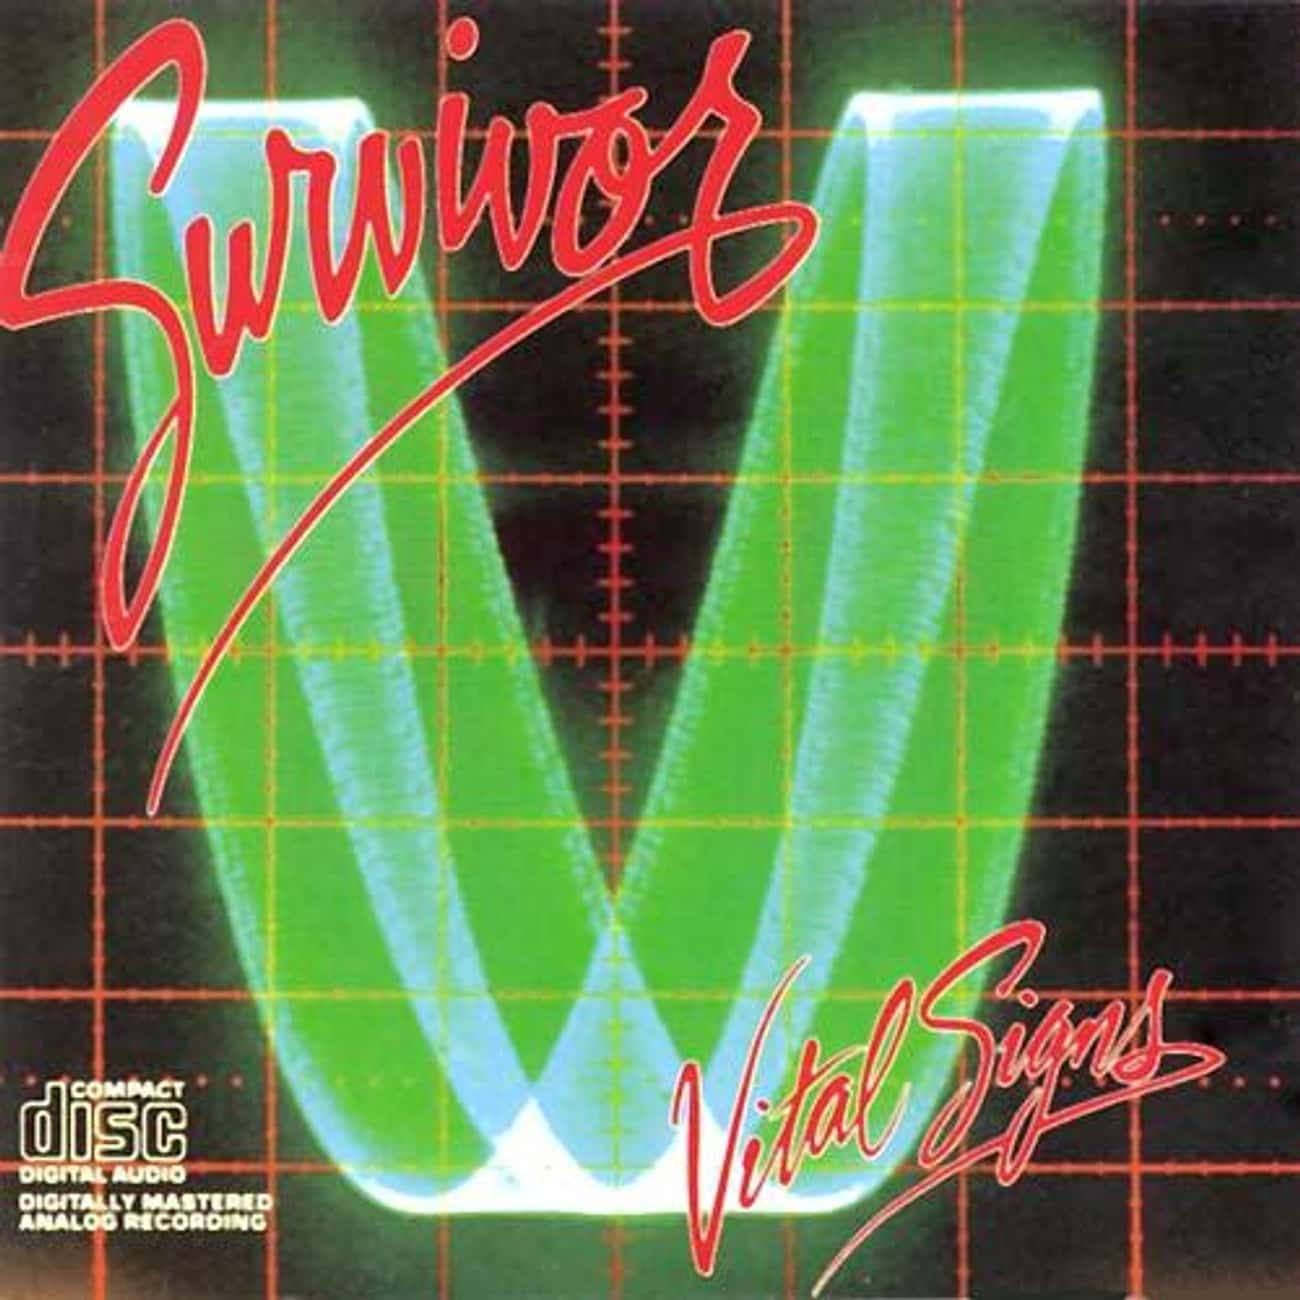 Vital Signs is listed (or ranked) 1 on the list The Best Survivor Albums of All Time